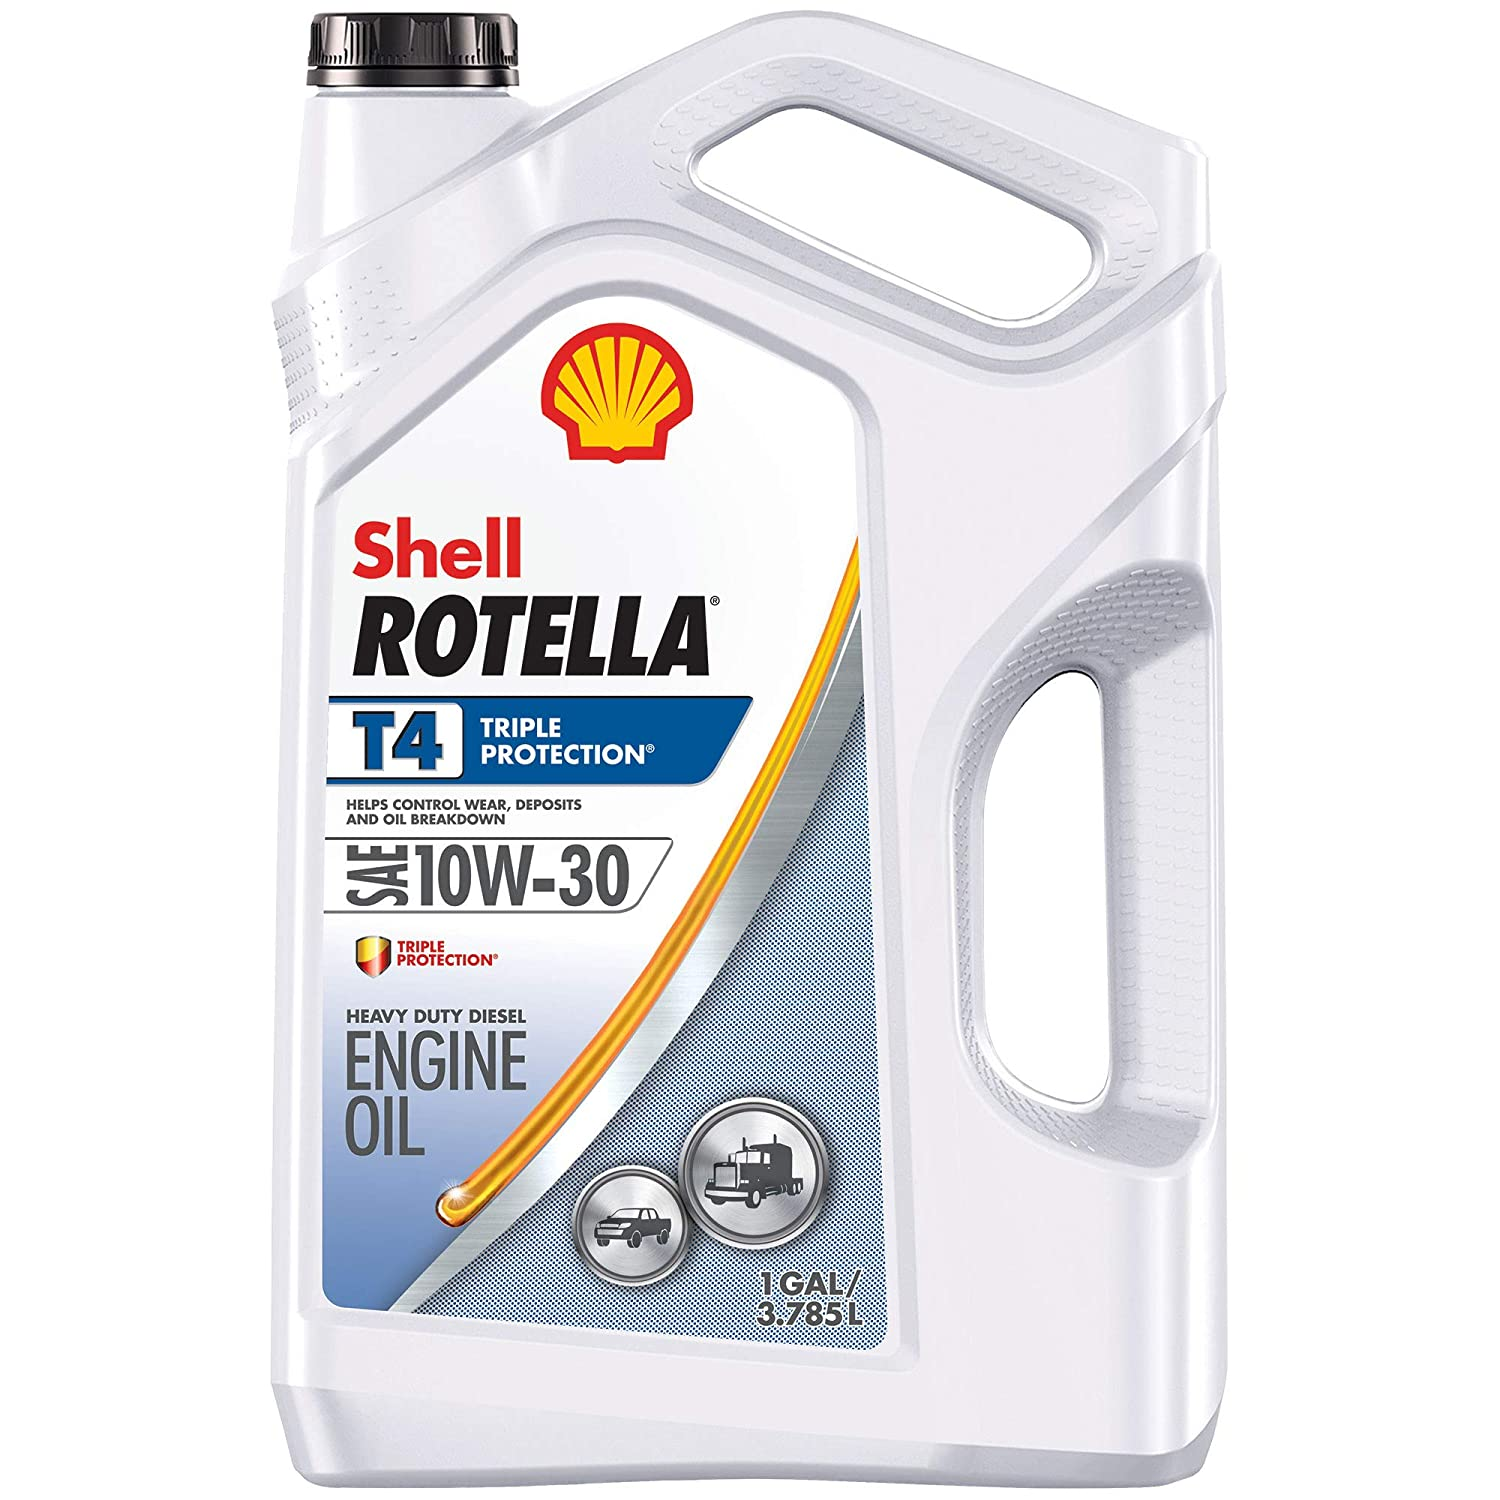 ROTELLA 550045144-3PK T4 Triple Protection Motor Diesel Oil (10W-30 CK-4), 3 Pack, 1 Gallon